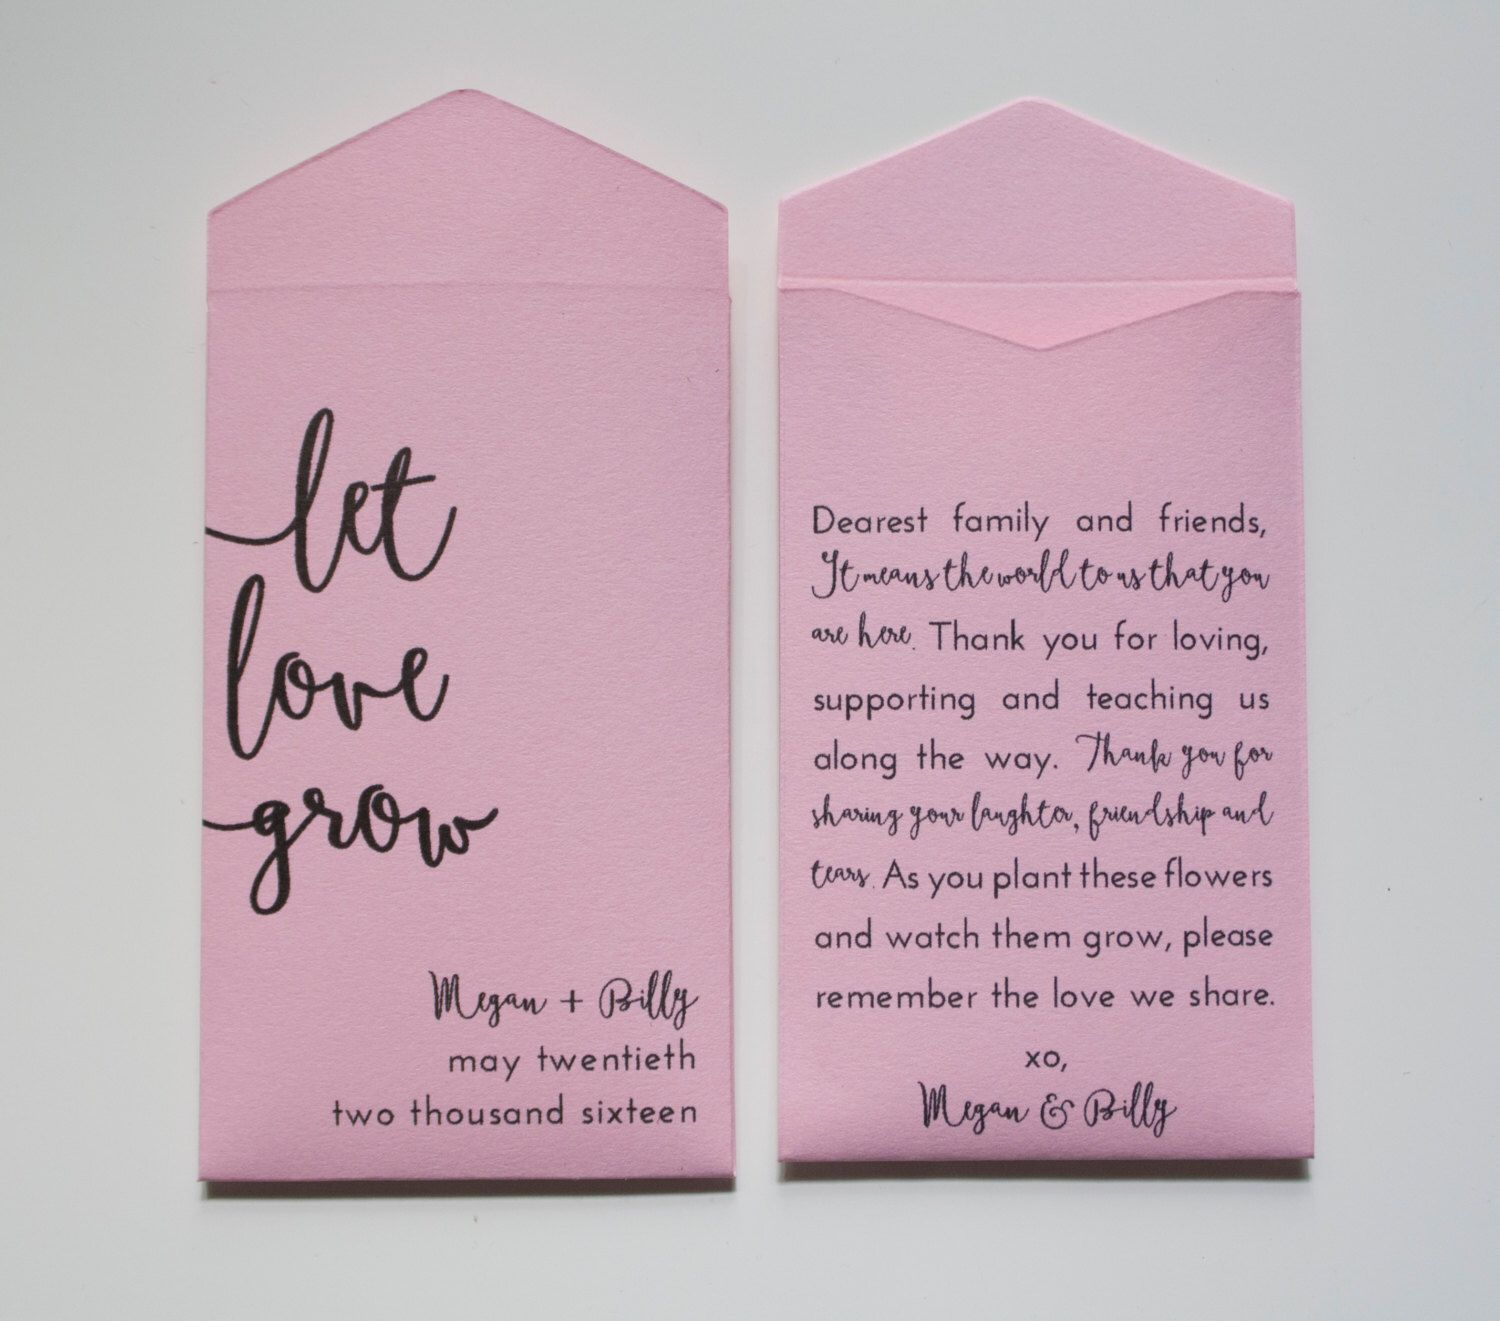 Coastal Connecticut Seaport Wedding | Wedding favors | Pinterest ...